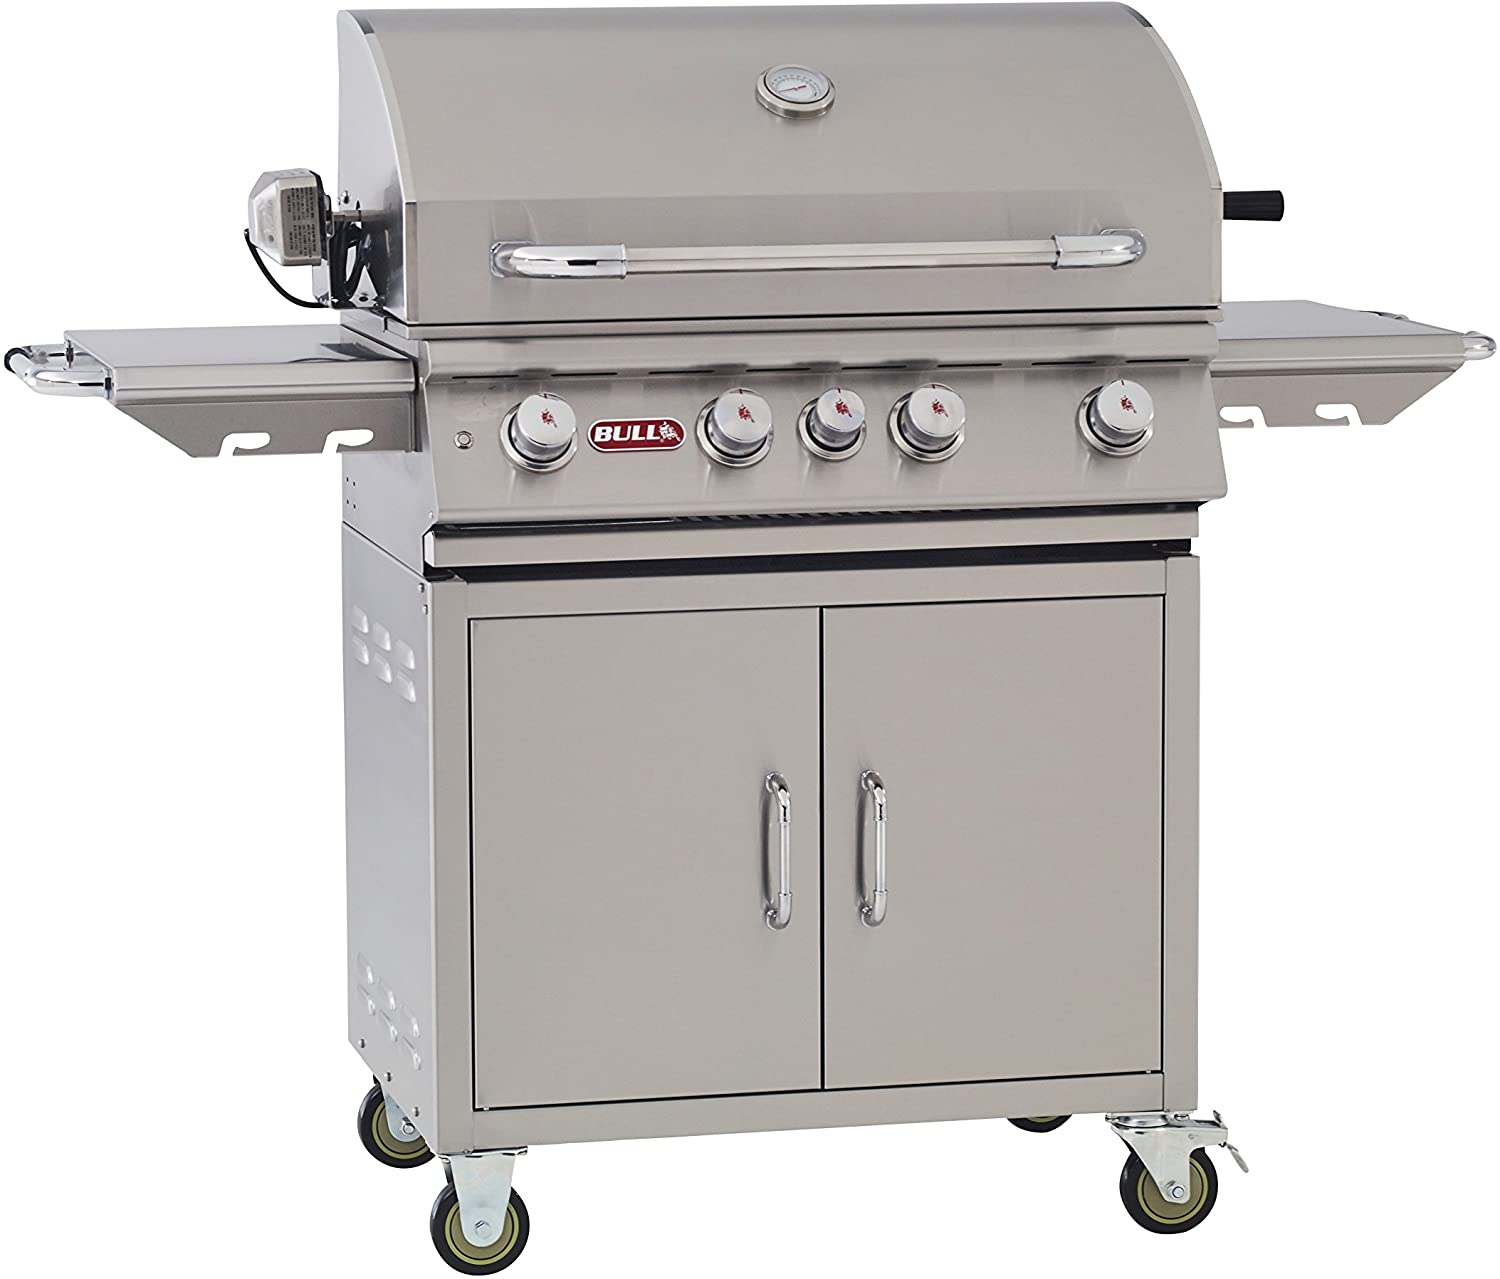 Amazon Com Bull Outdoor Products Bbq 44000 Angus 75 000 Btu Grill With Cart Liquid Propane Garden Outdoor